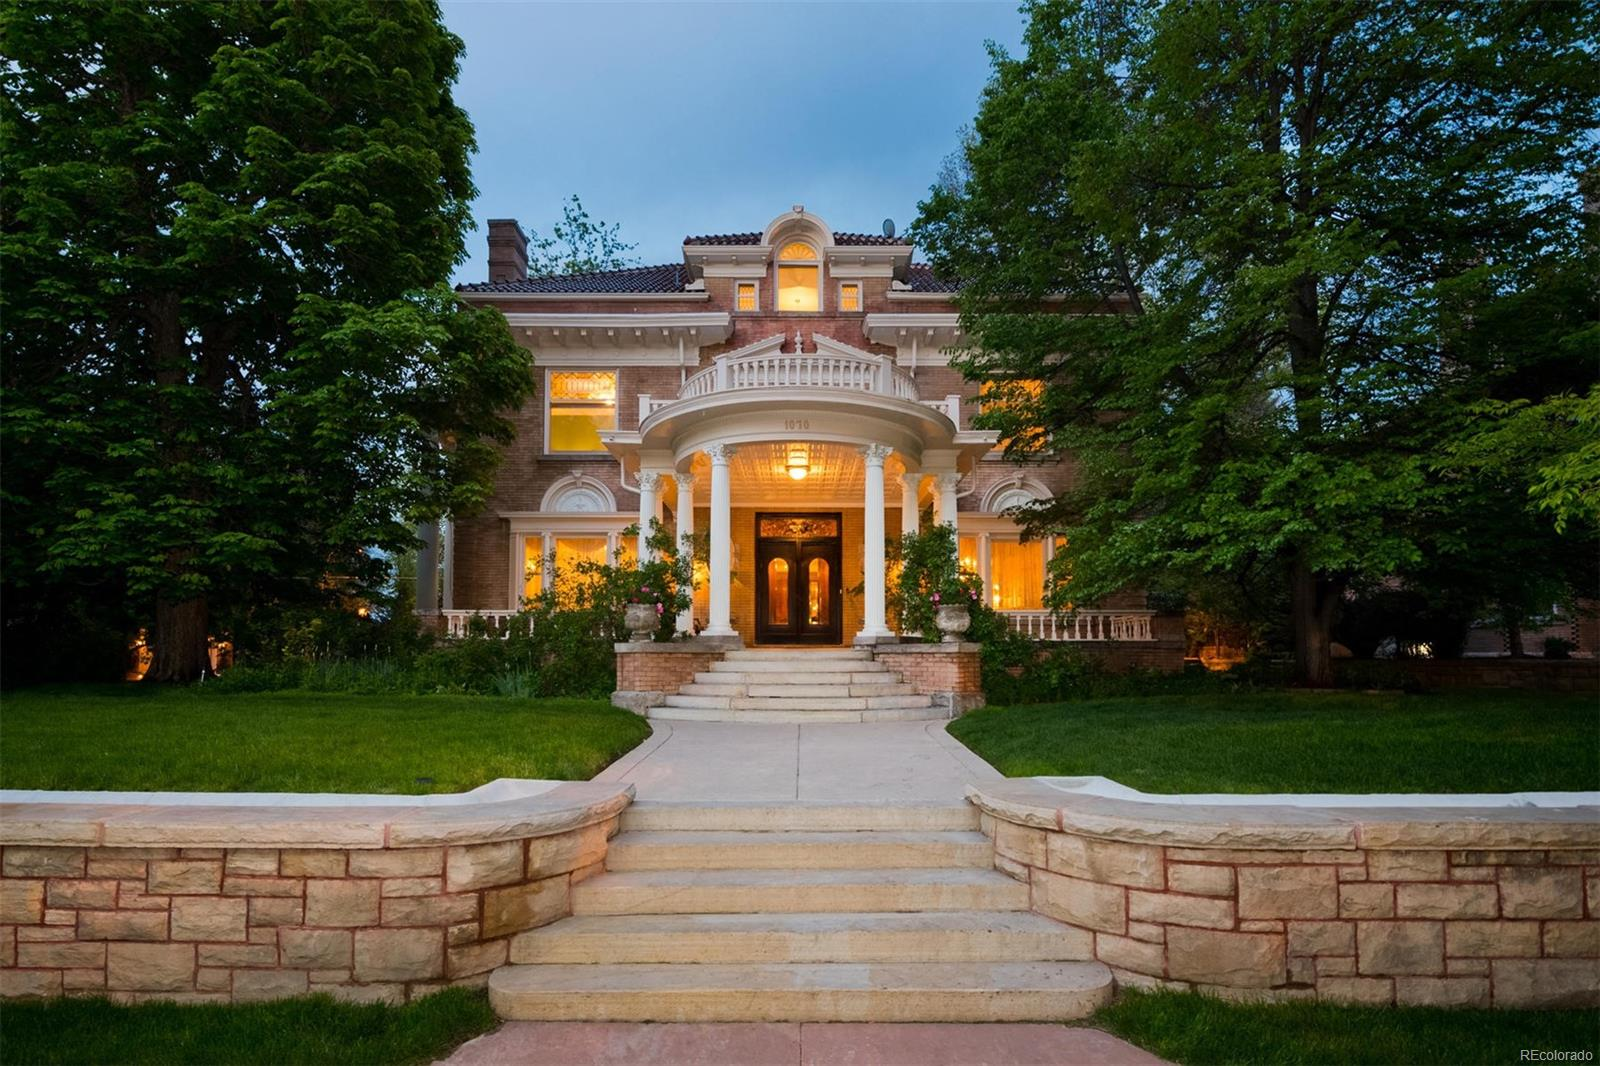 Two Historic Cheesman Park Mansions For Sale by LIV Sotheby's International Realty - Steve Blank & Jared Blank are recognized for listing this beautiful, historic home featured as one of two mansions for sale by LIV Sotheby's.Read the article on The Denver Post